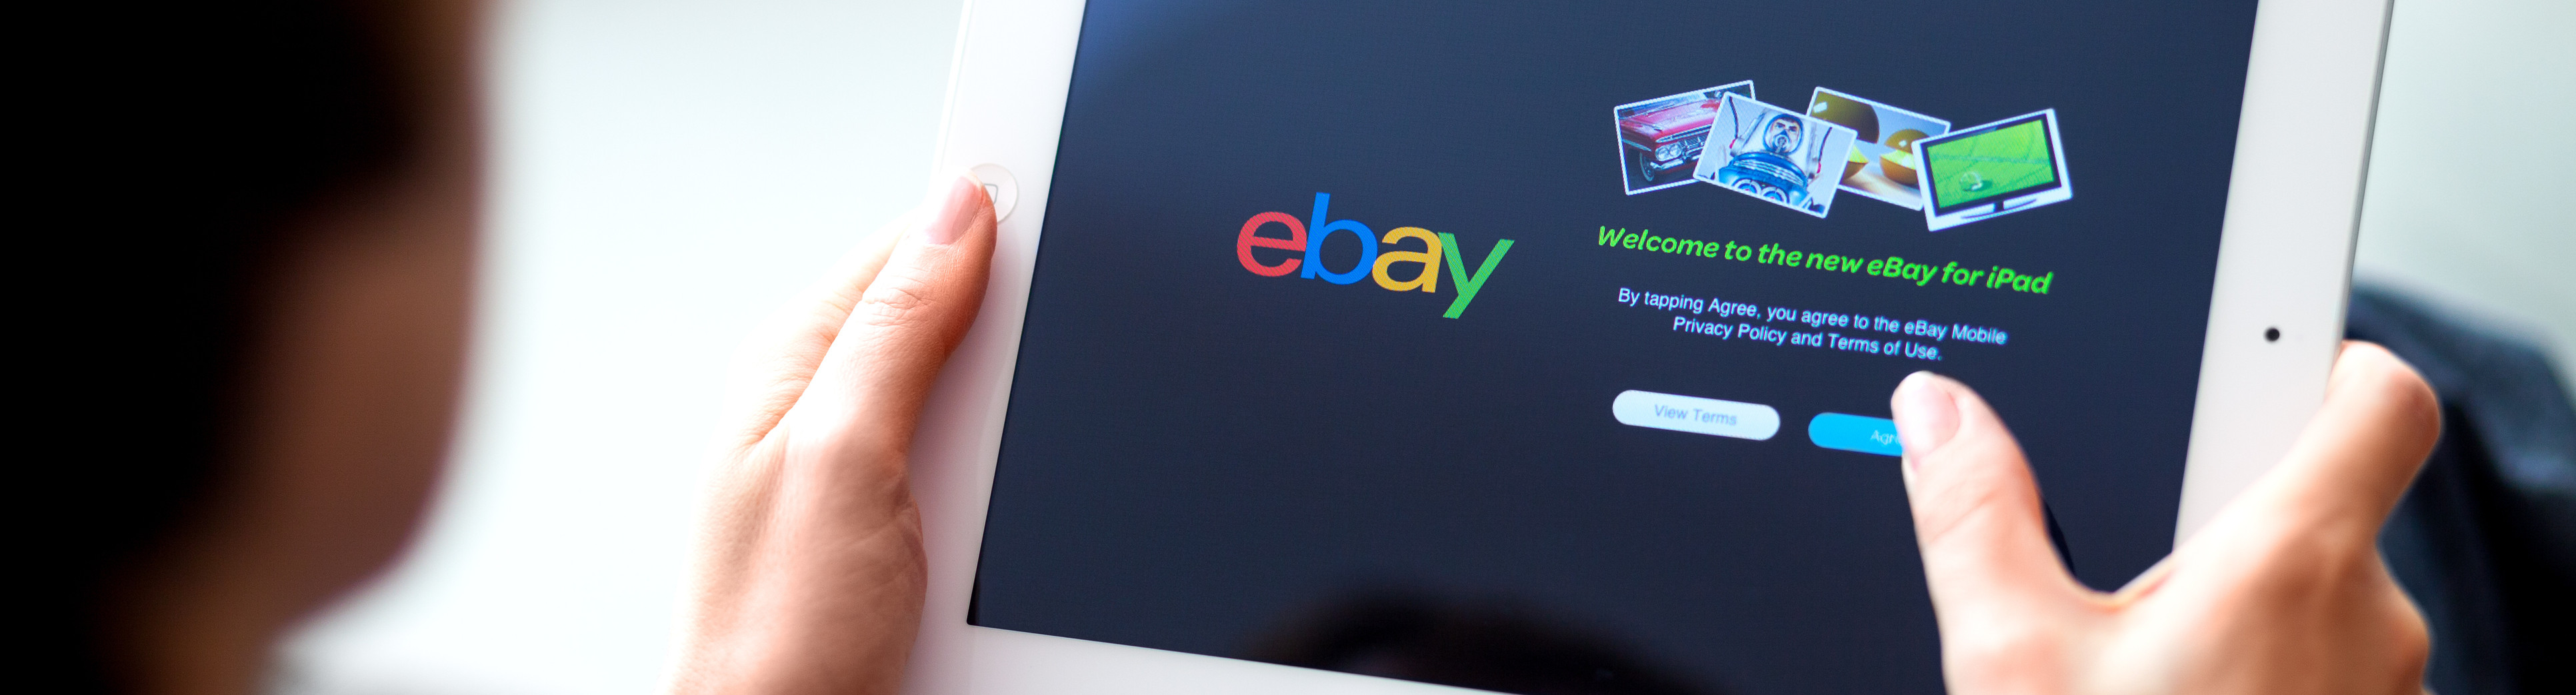 shopping eBay on tablet